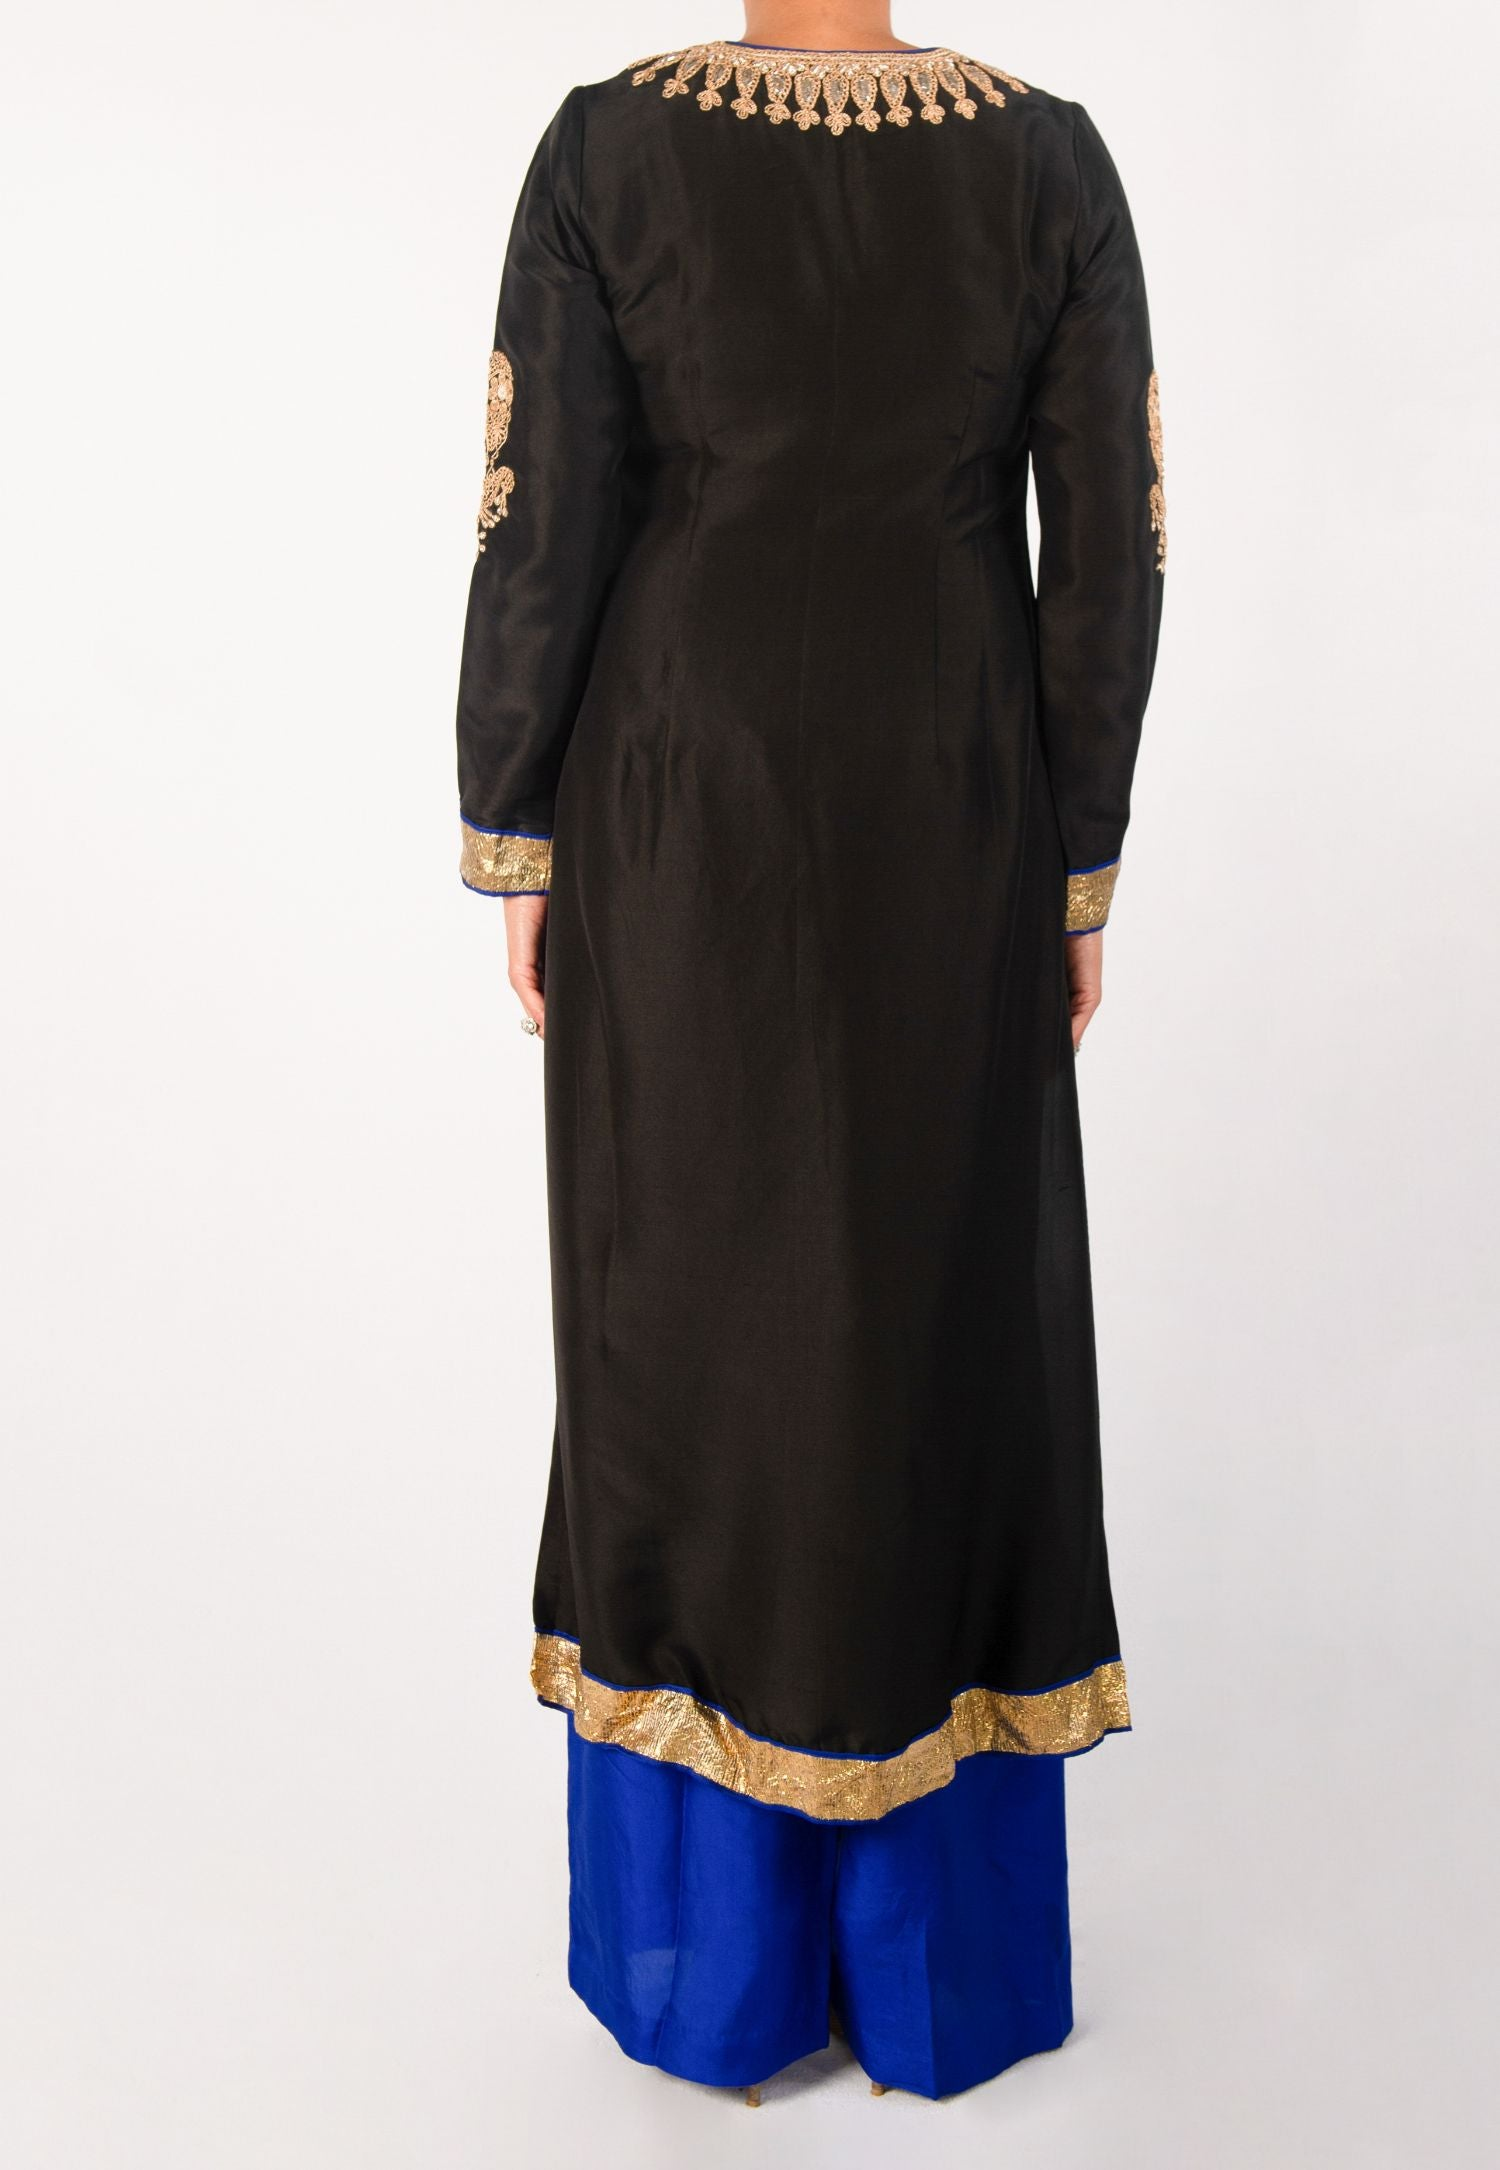 BLACK KURTA, GOLD EMBROIDERY WITH BLUE PALAZZO PANTS